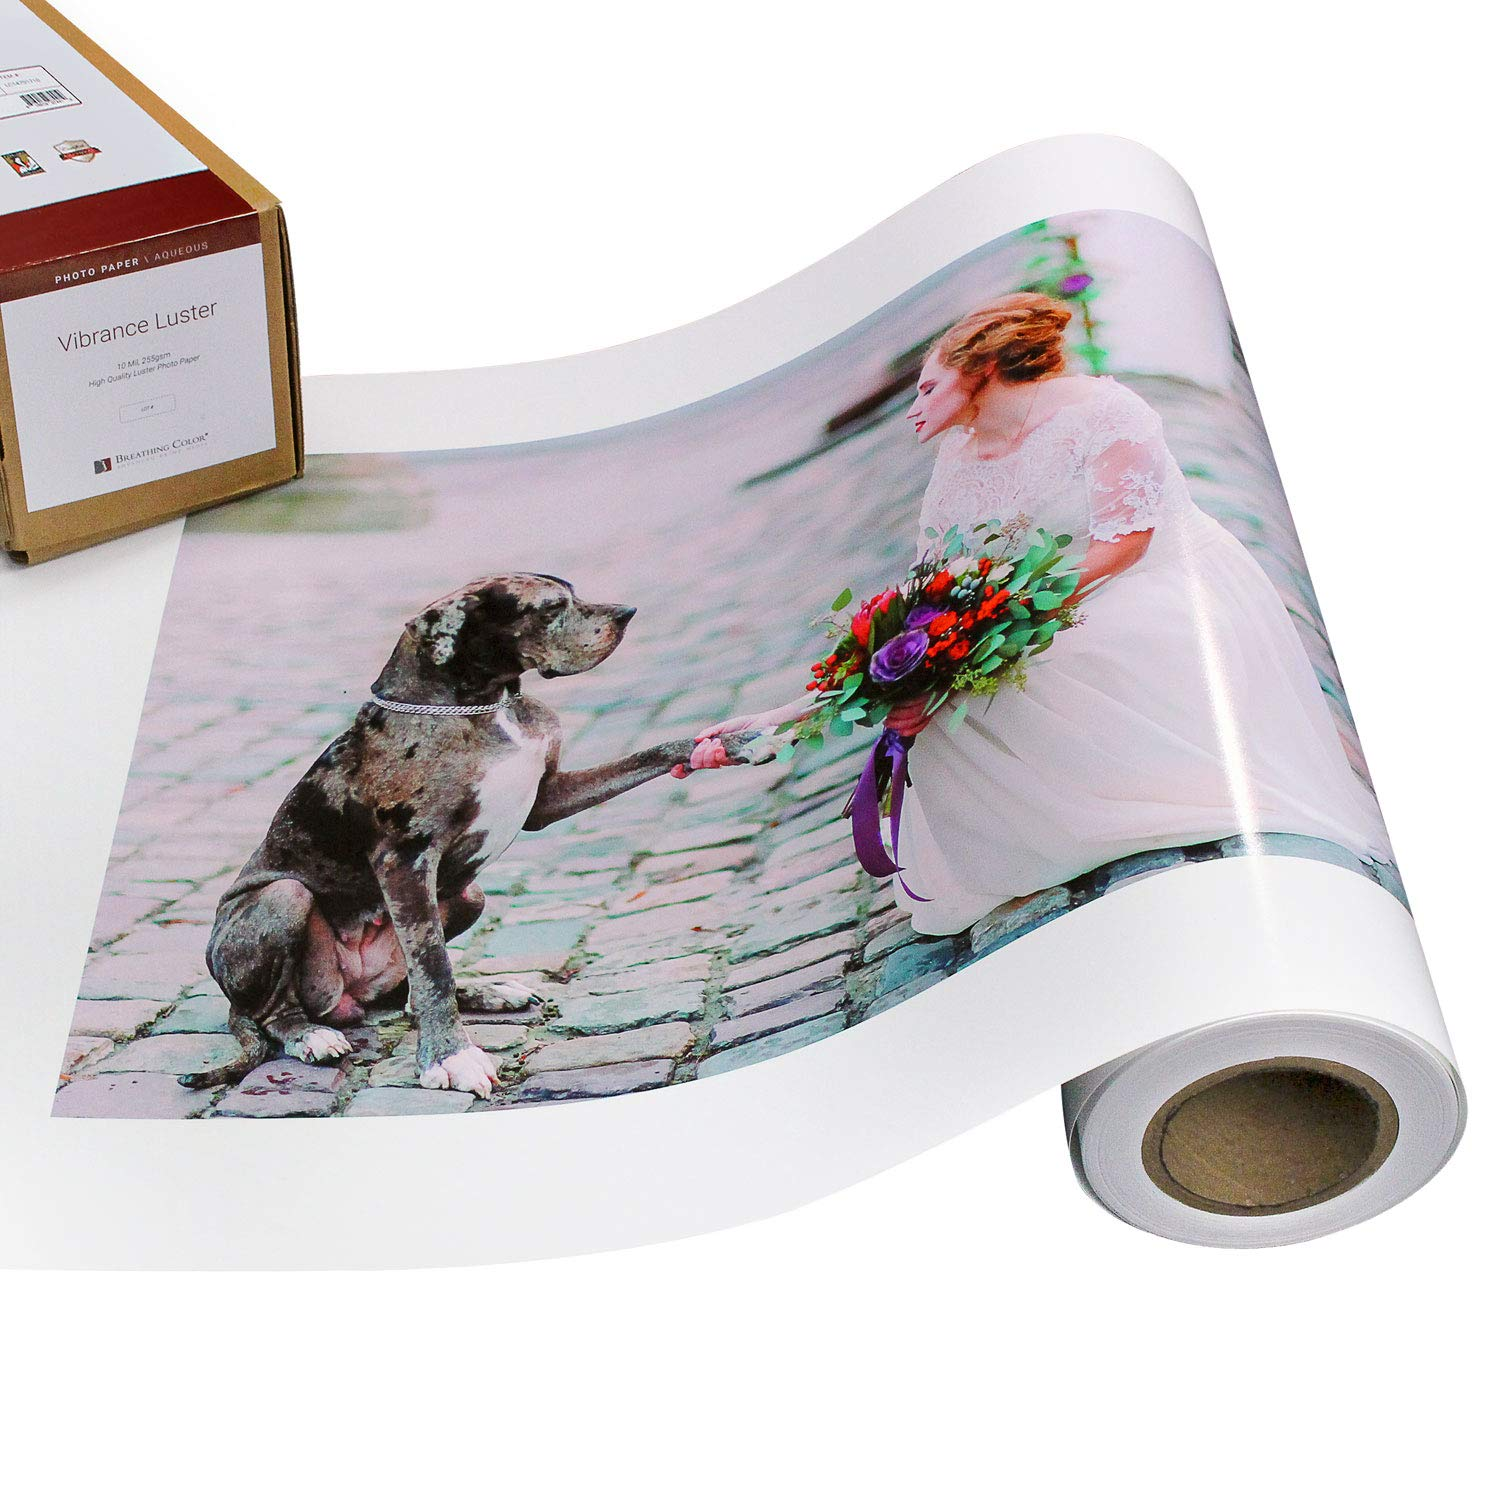 Vibrance Luster Photo Printer Paper 10 mil 255 gsm Luster Finish Premium Photo Paper Roll on 3in Core 24 inches x 100 feet Works with Most Inkjet Printers Including Professional Makes and Models by Breathing Color